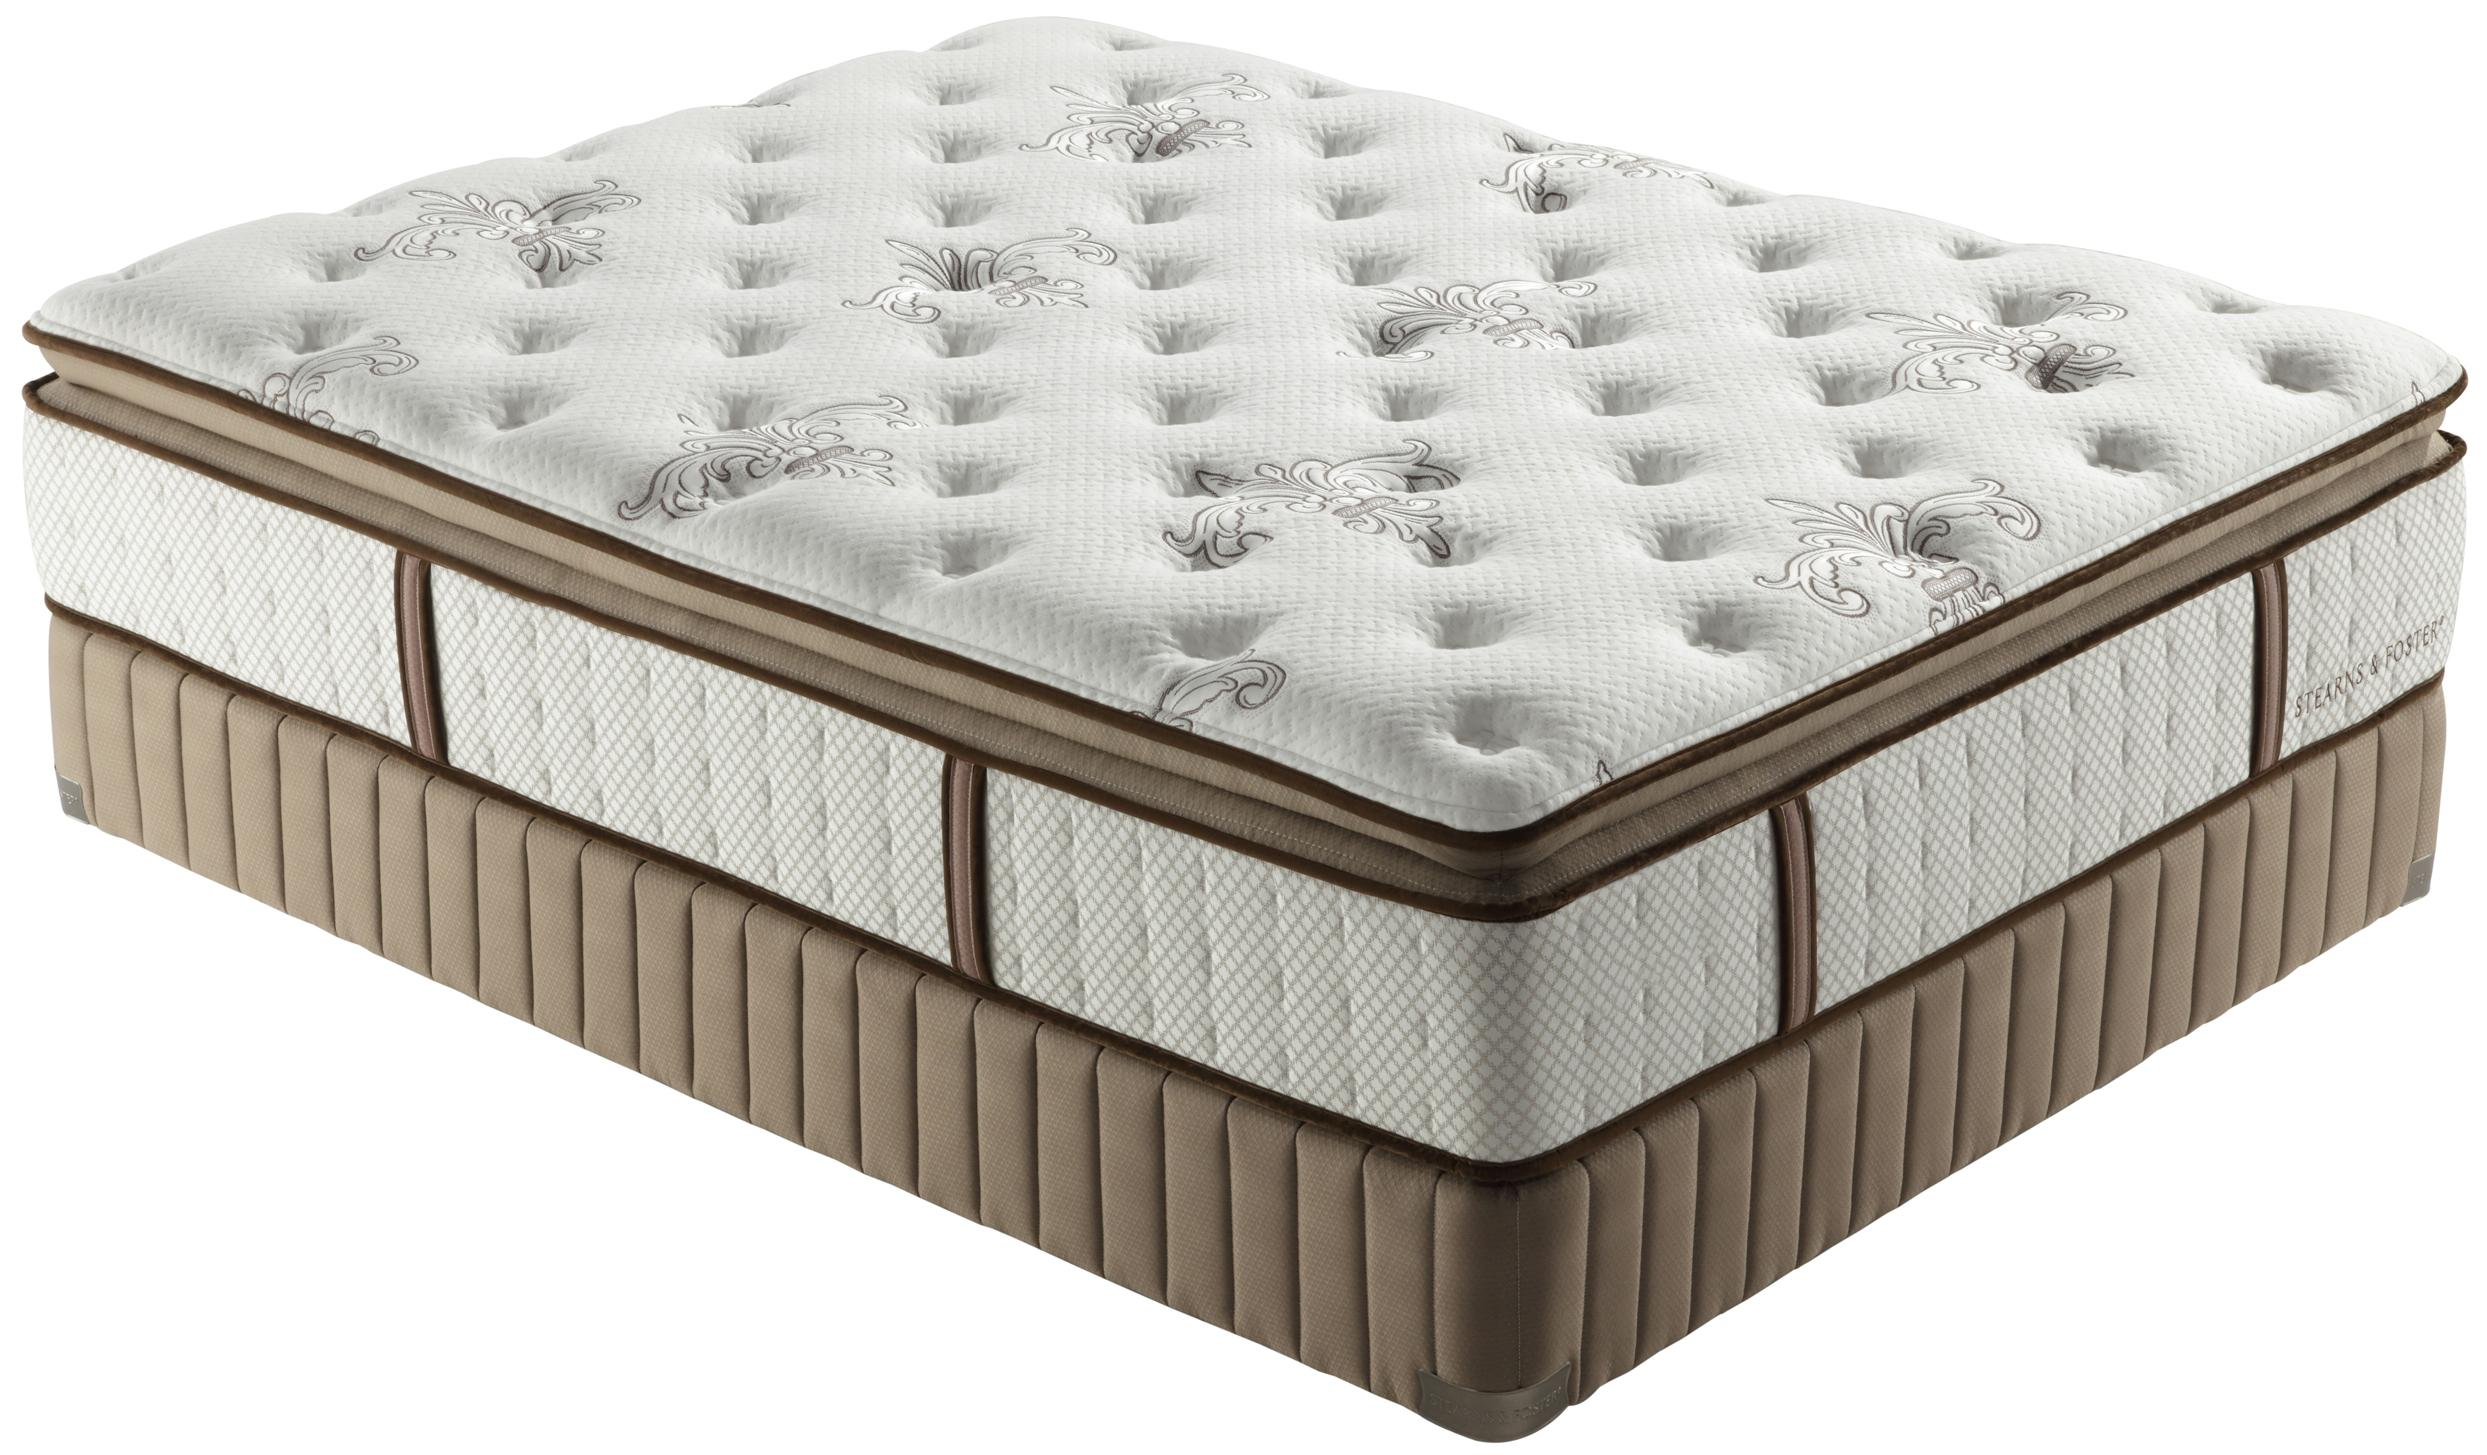 Low Profile Innerspring Mattress Stearns And Foster Estate 2012 King Luxury Firm Euro Pillow